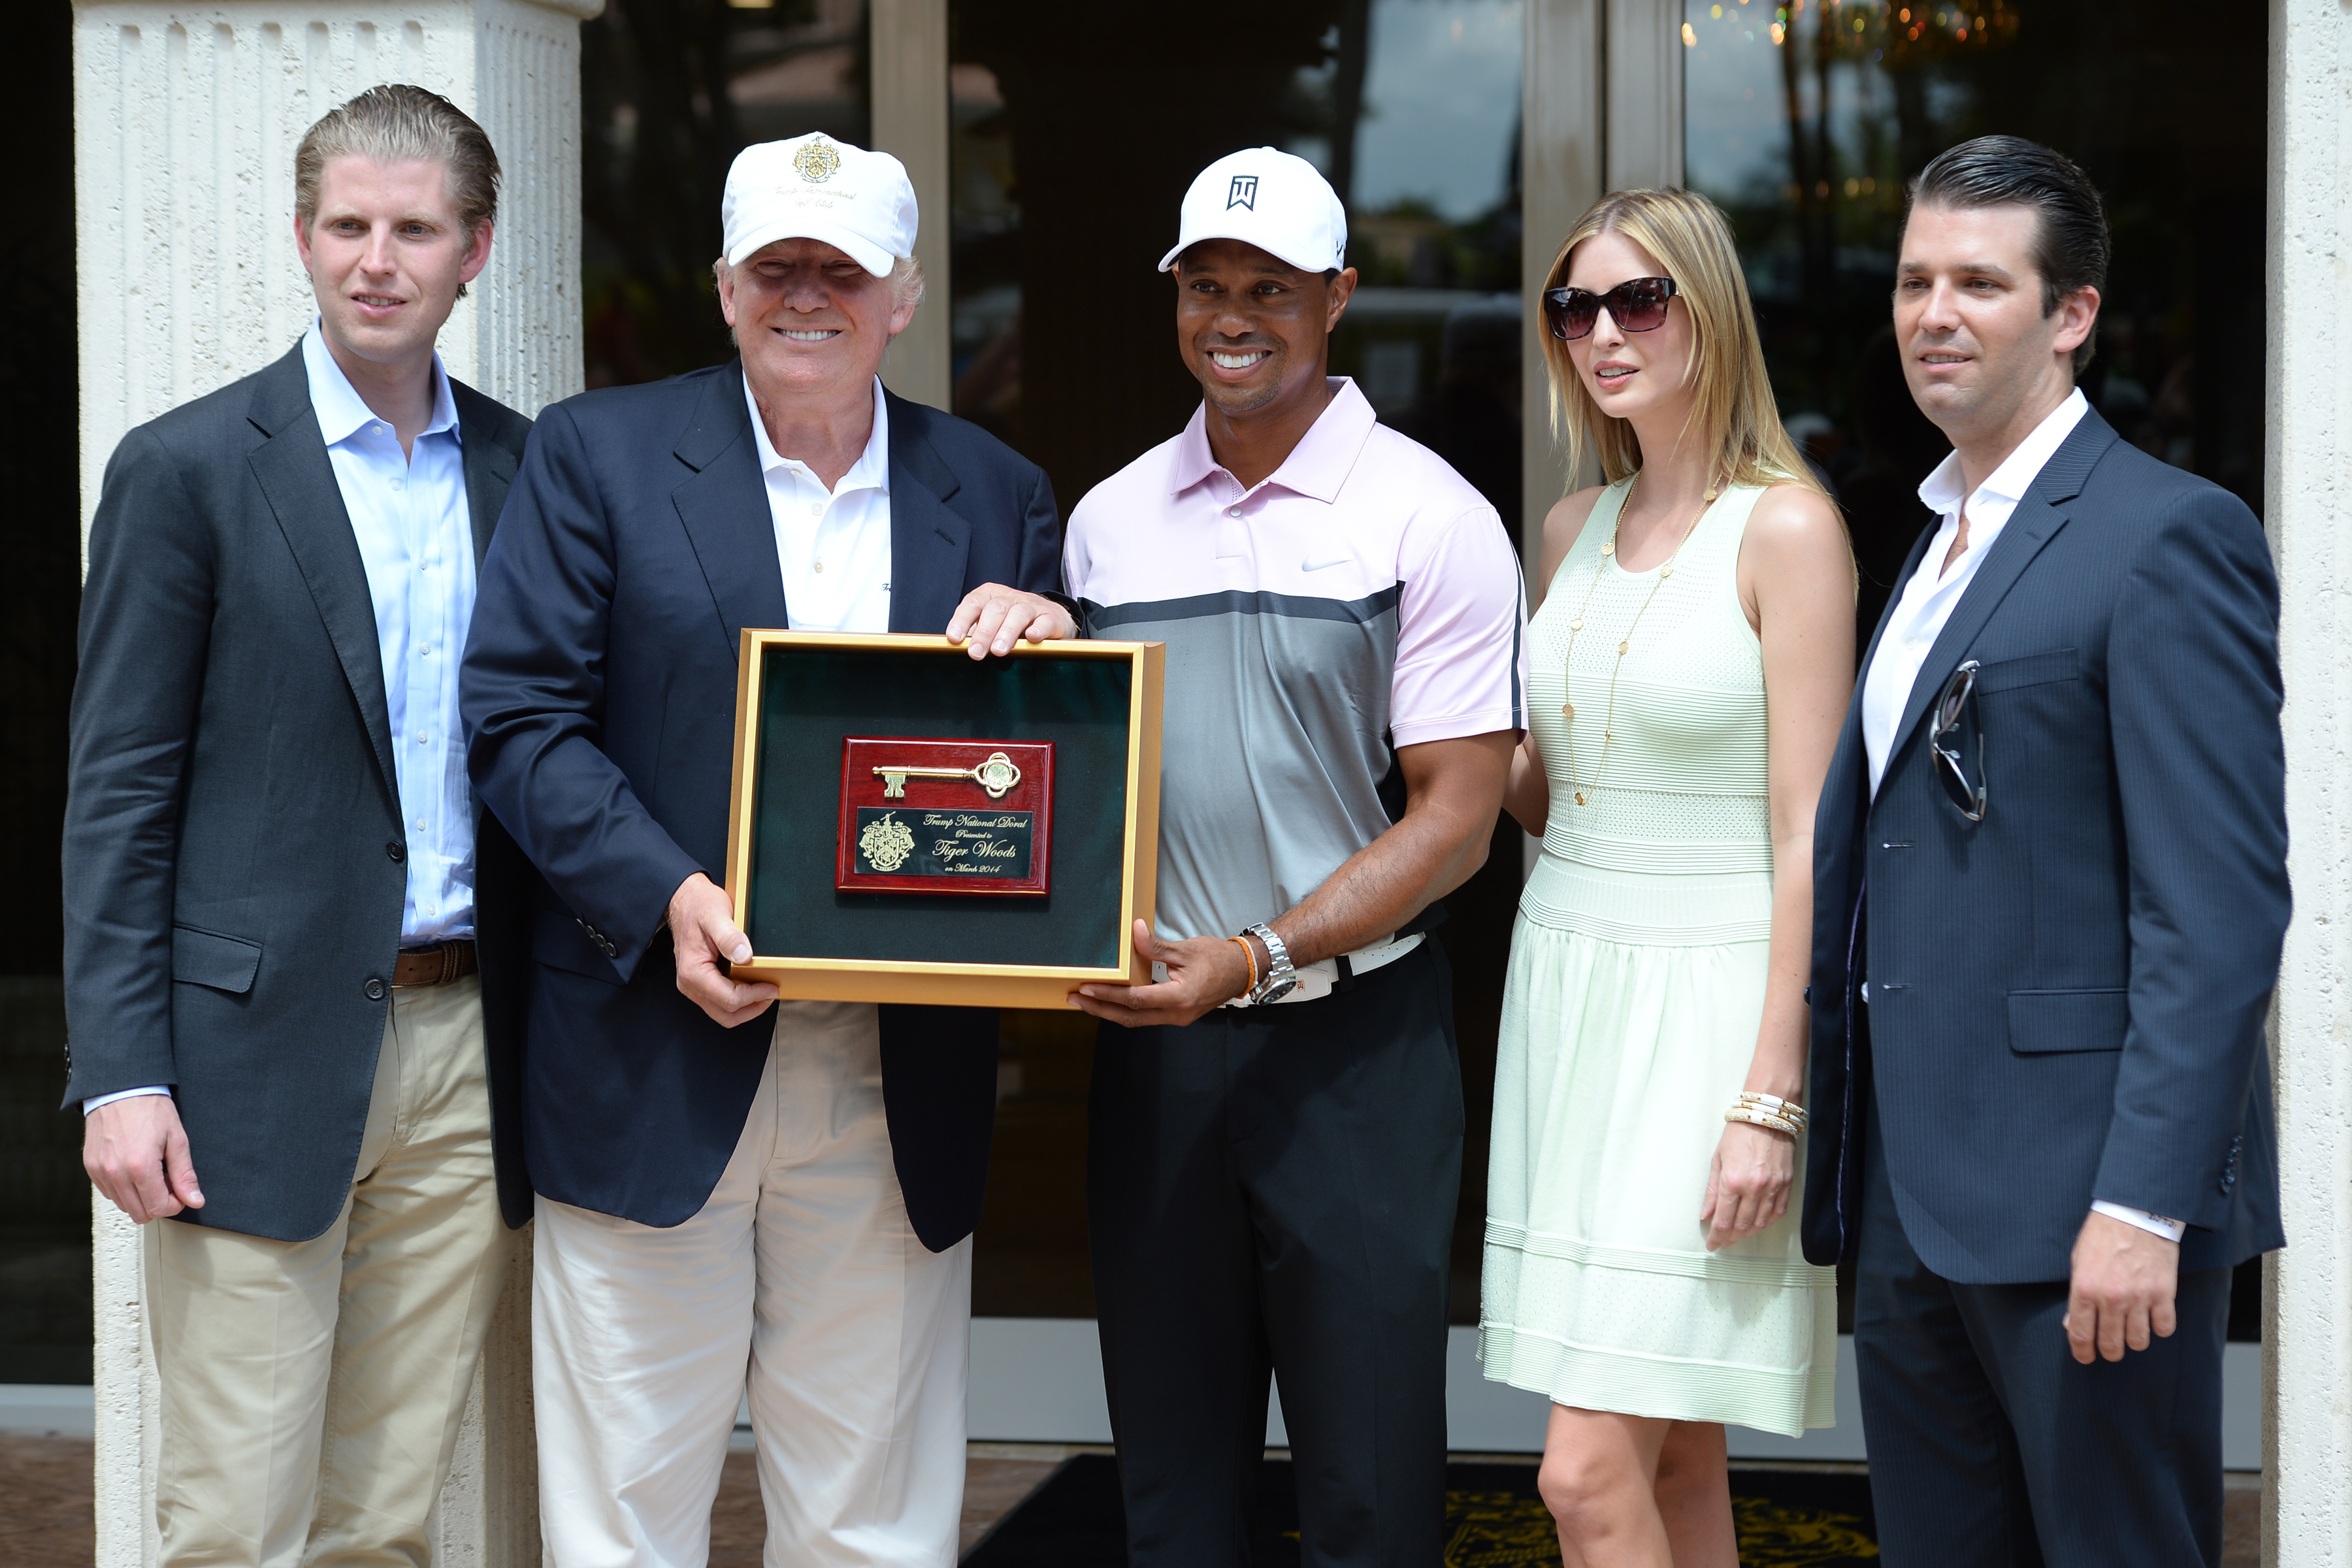 Tiger Woods knows the First Family from his winner's circle days at Trump-owned Doral.